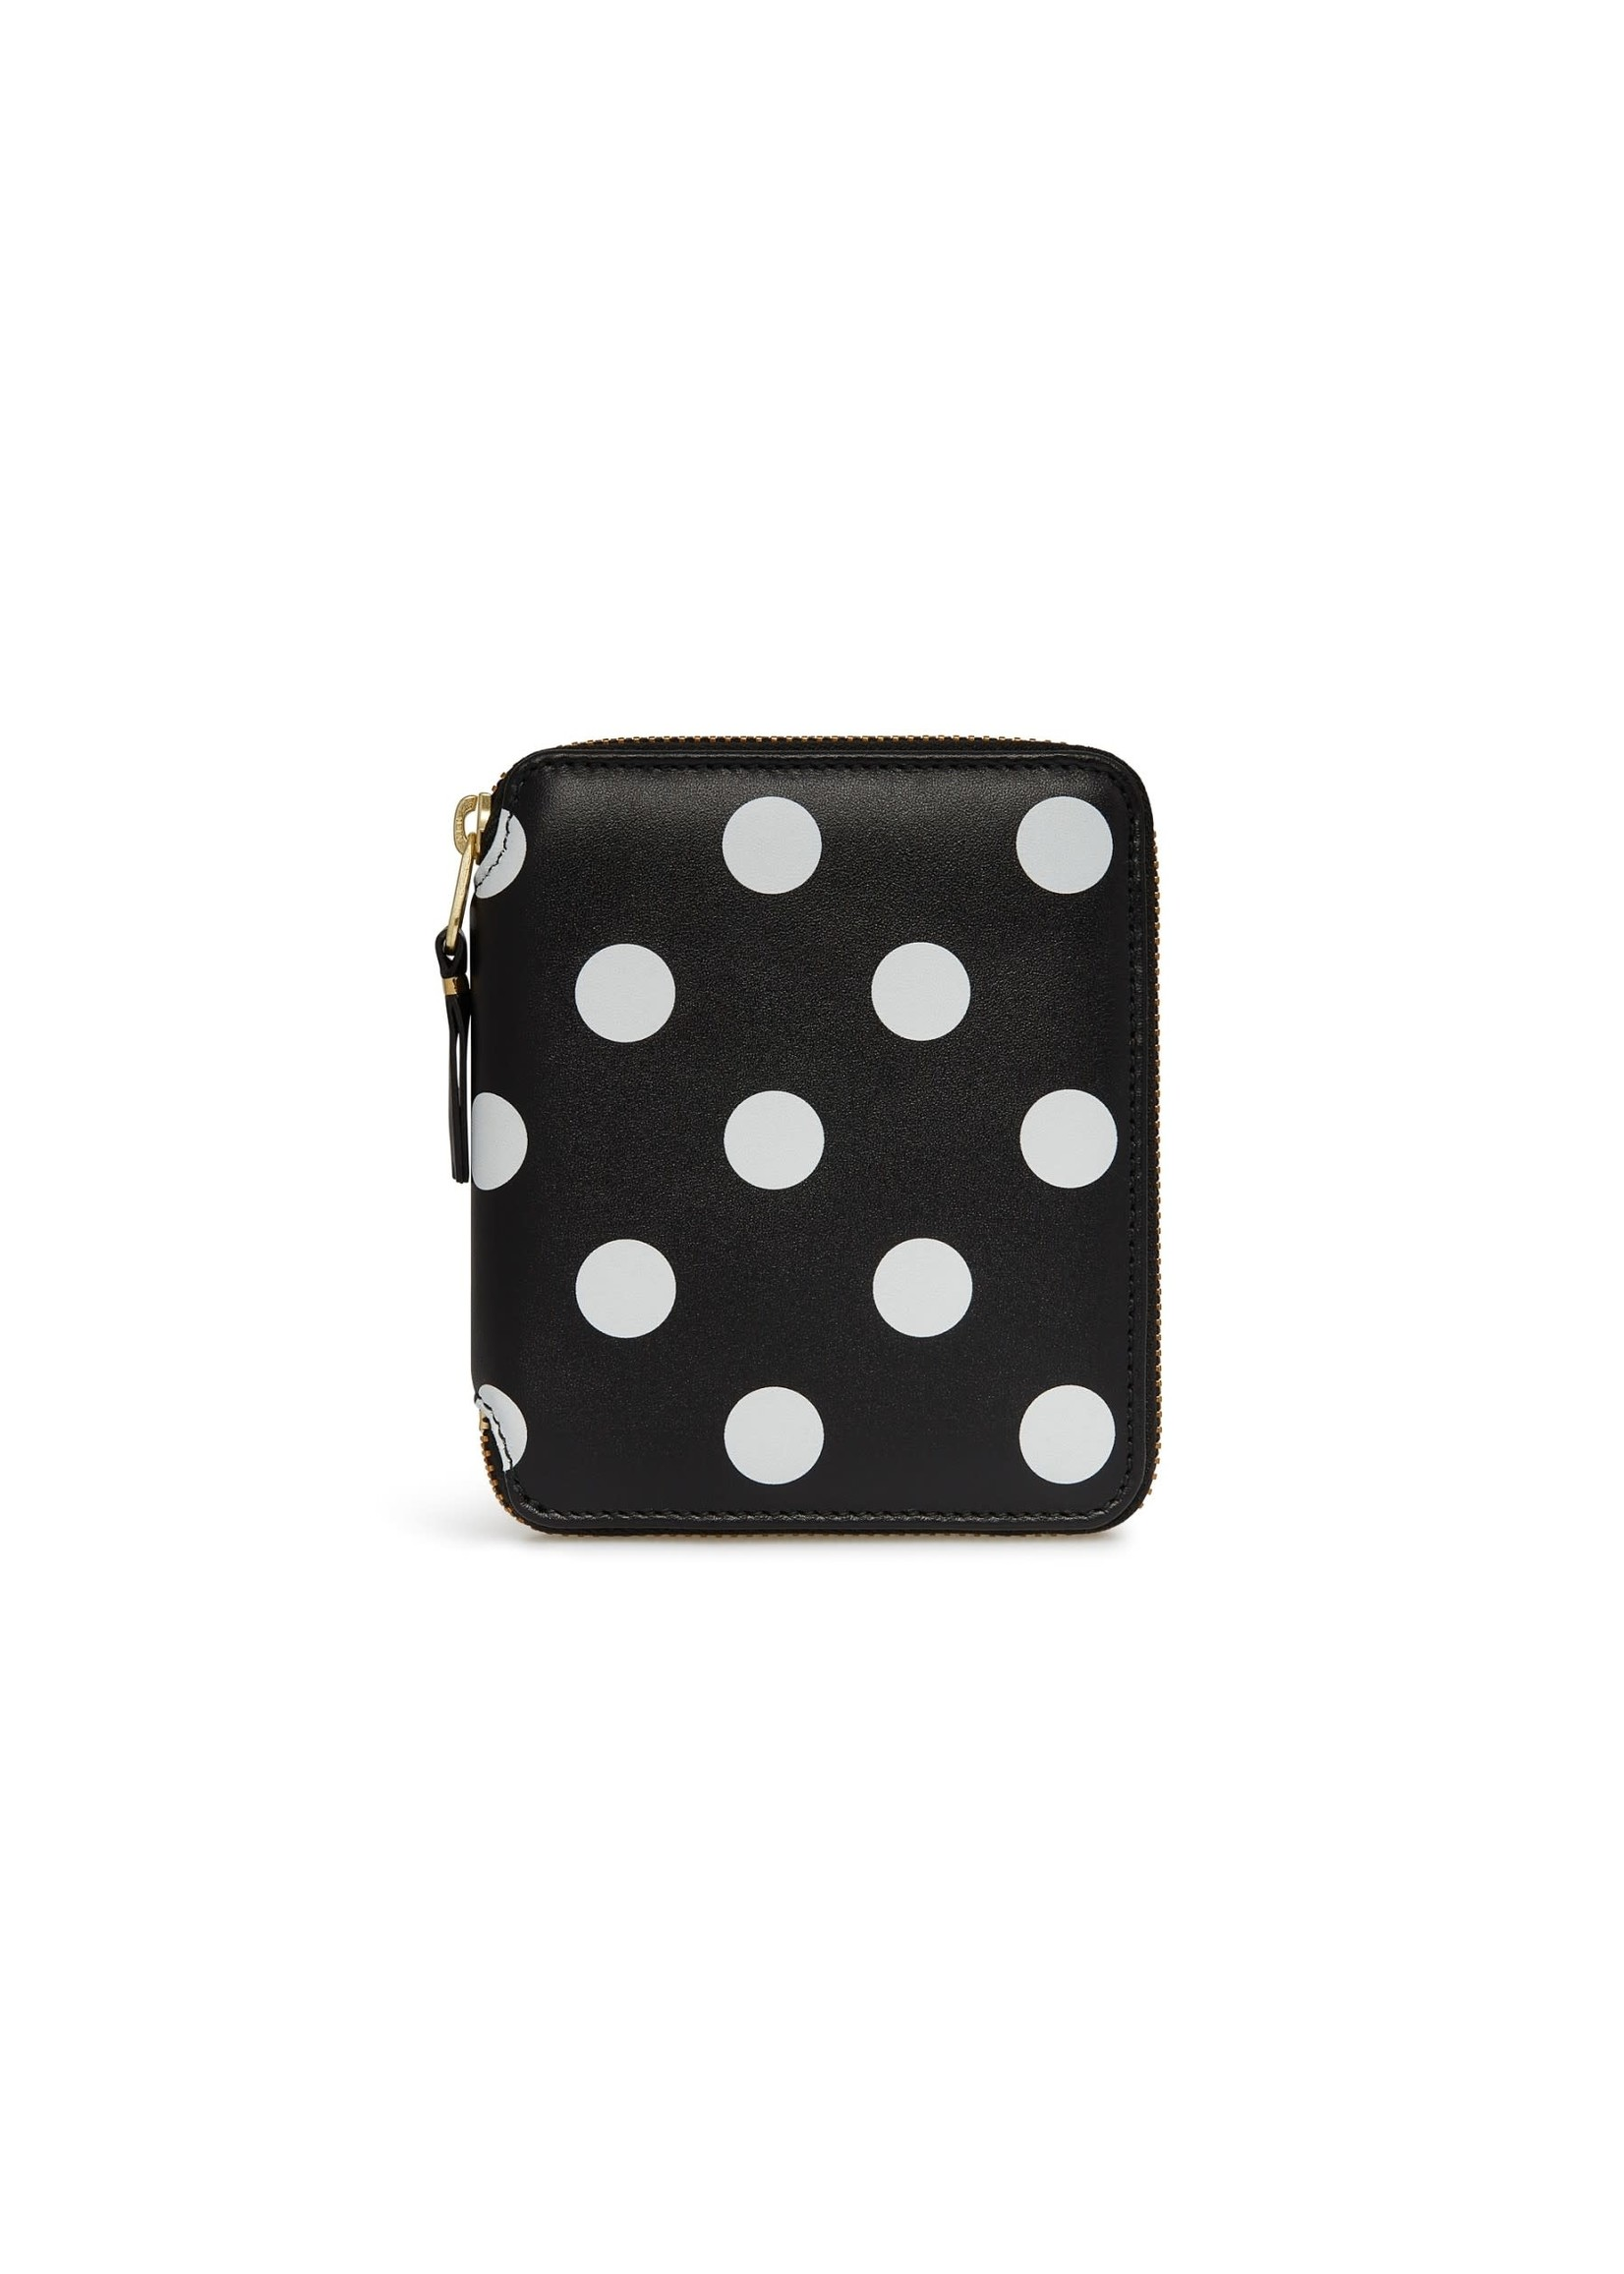 COMME des GARÇONS WALLET Full Zip Wallet Black/White Polka Dot SA2100PD